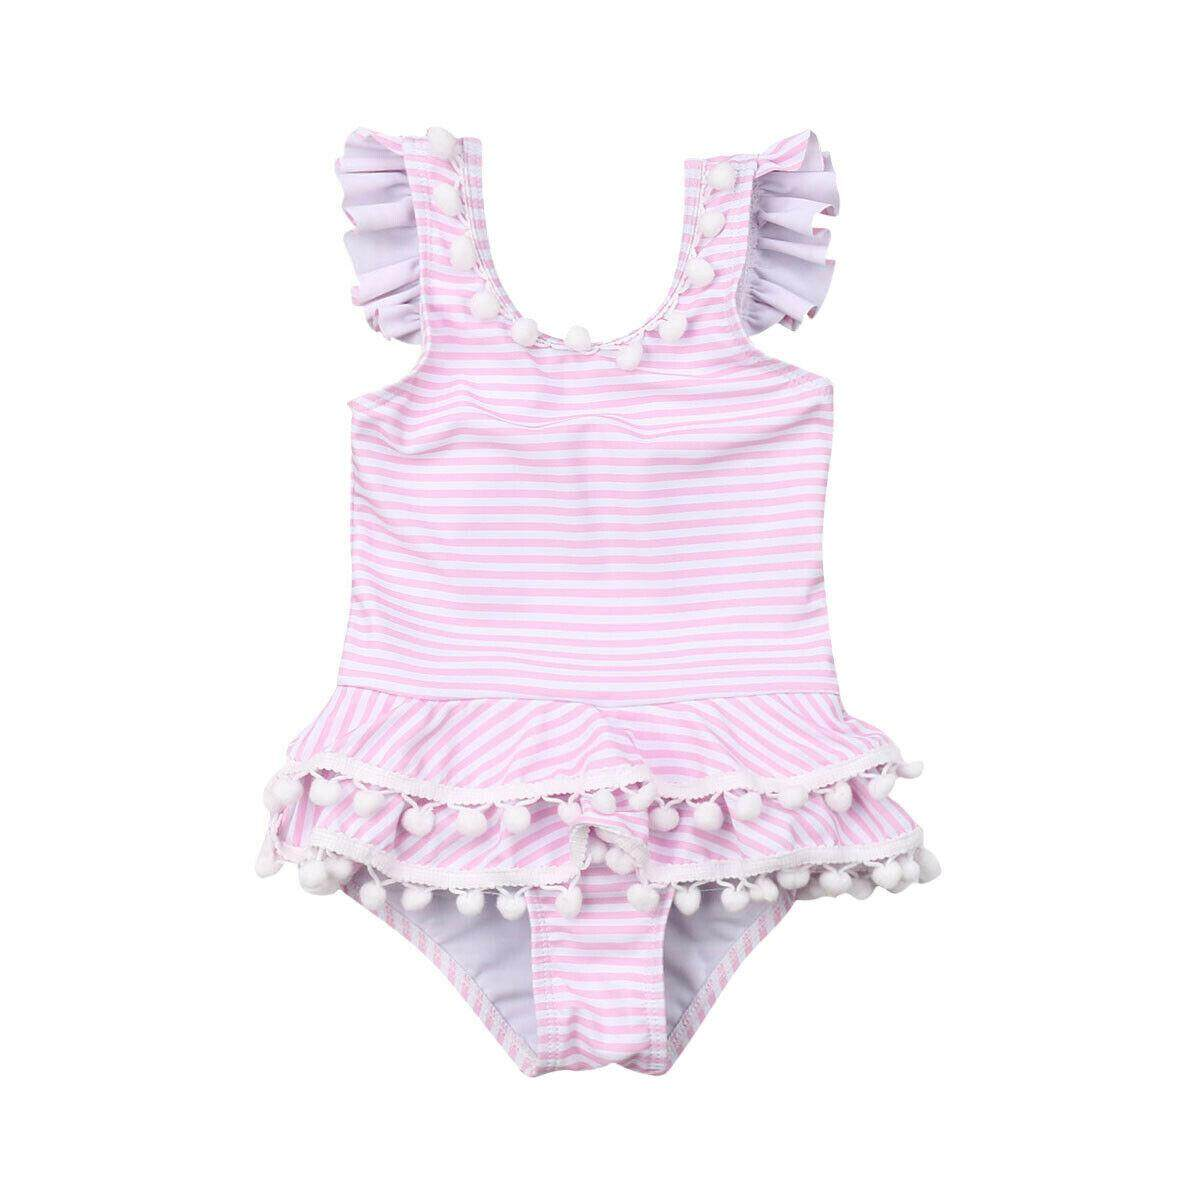 162d983557d03 Newborn Kids Baby Girls Striped Bikini Swimwear Swimsuit Bathing Suit  Beachwear